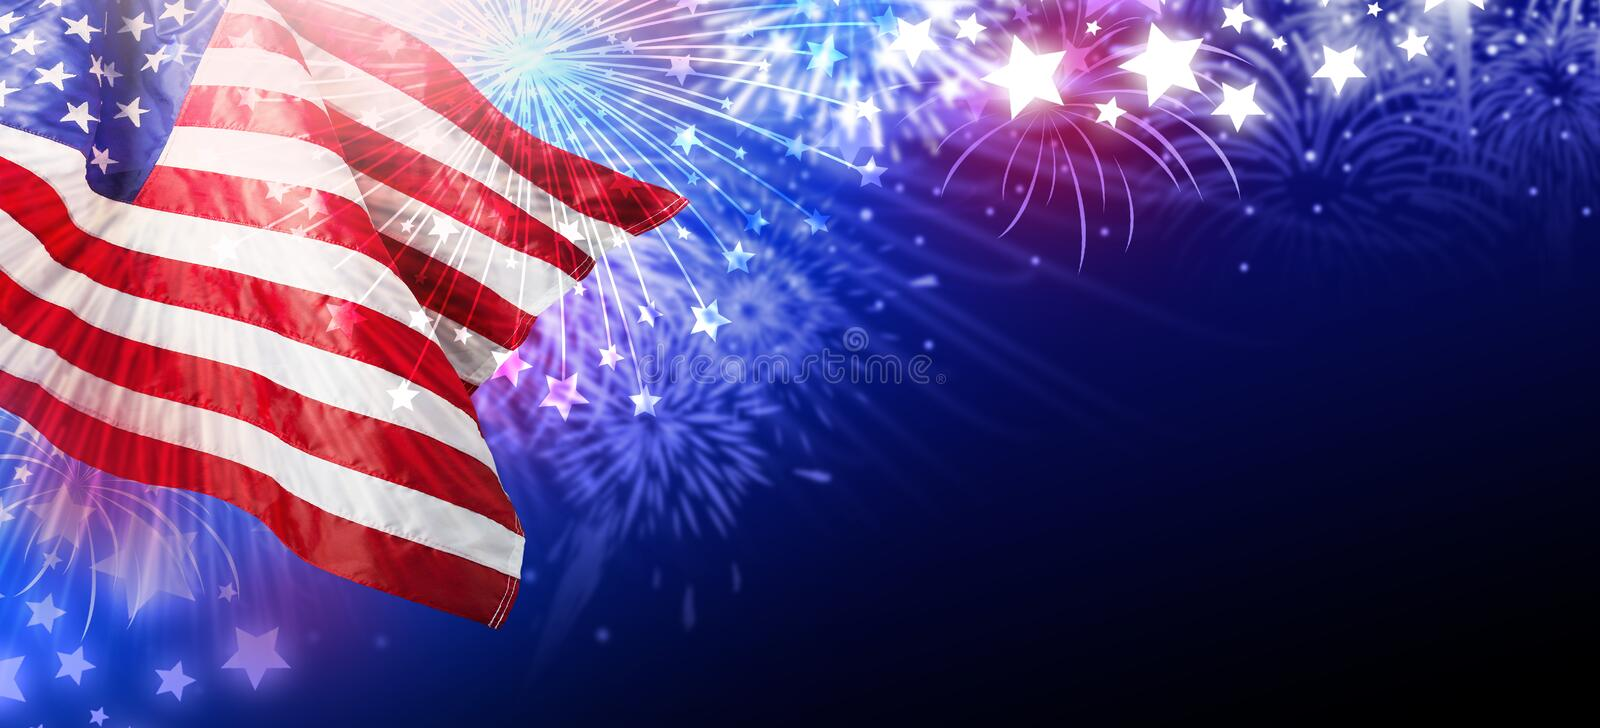 USA or america flag with fireworks abstract background. With copy space royalty free illustration